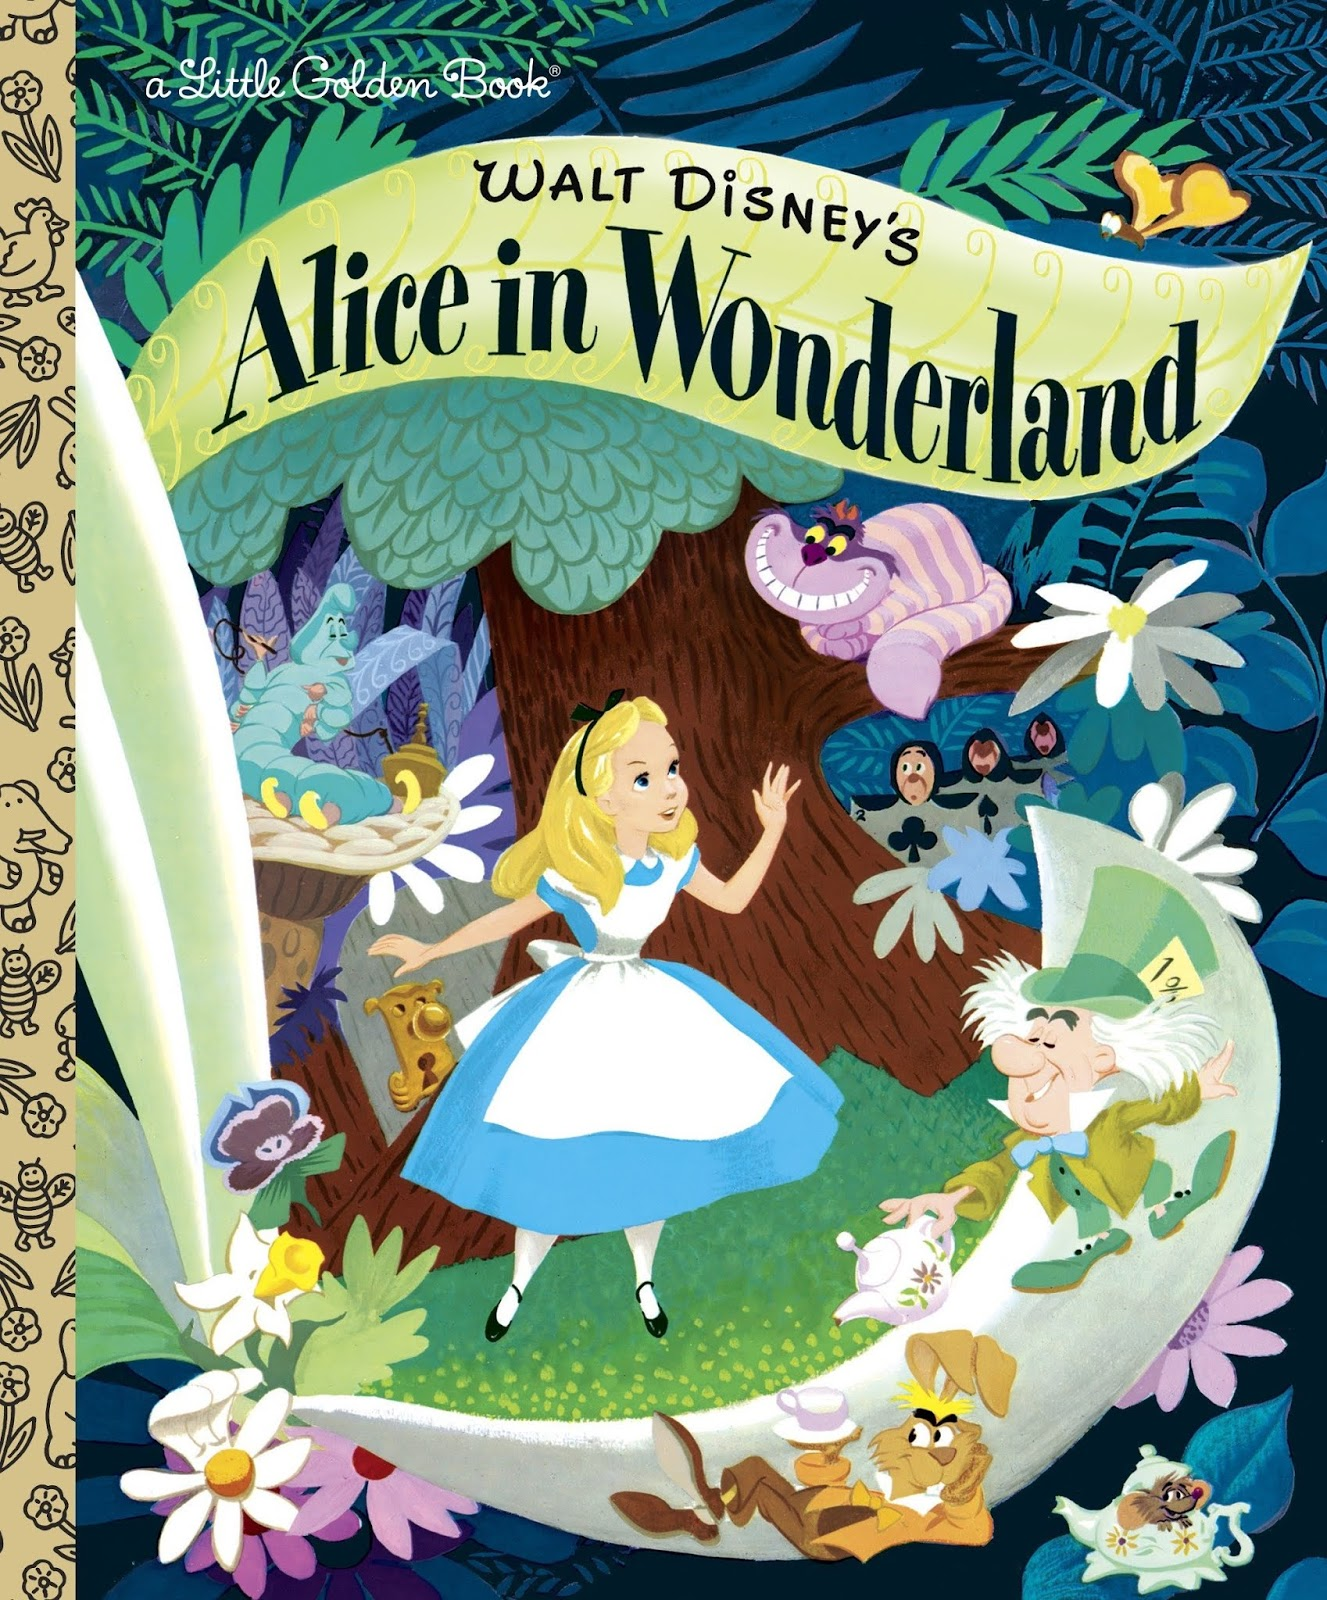 Cover to Little Golden Book of Disney's 1951 'Alice in Wonderland', showing Alice surrounded by Cheshire Cat, Mad Hatter pouring tea into March Hare's cup, the Caterpillar, and cards from Queeen's court